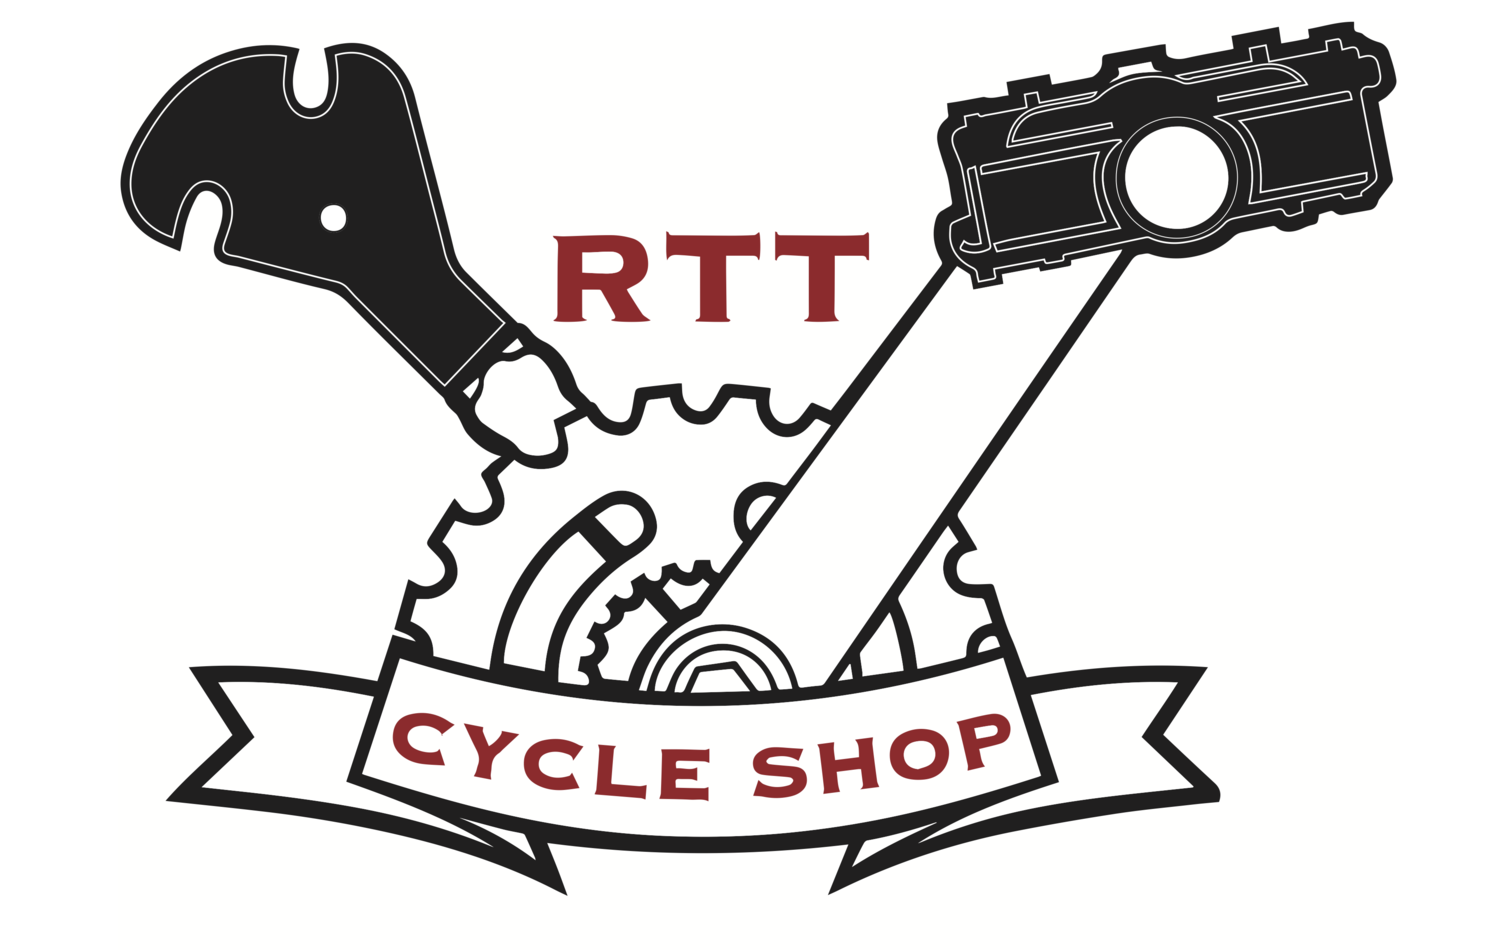 RTT CYCLE SHOP